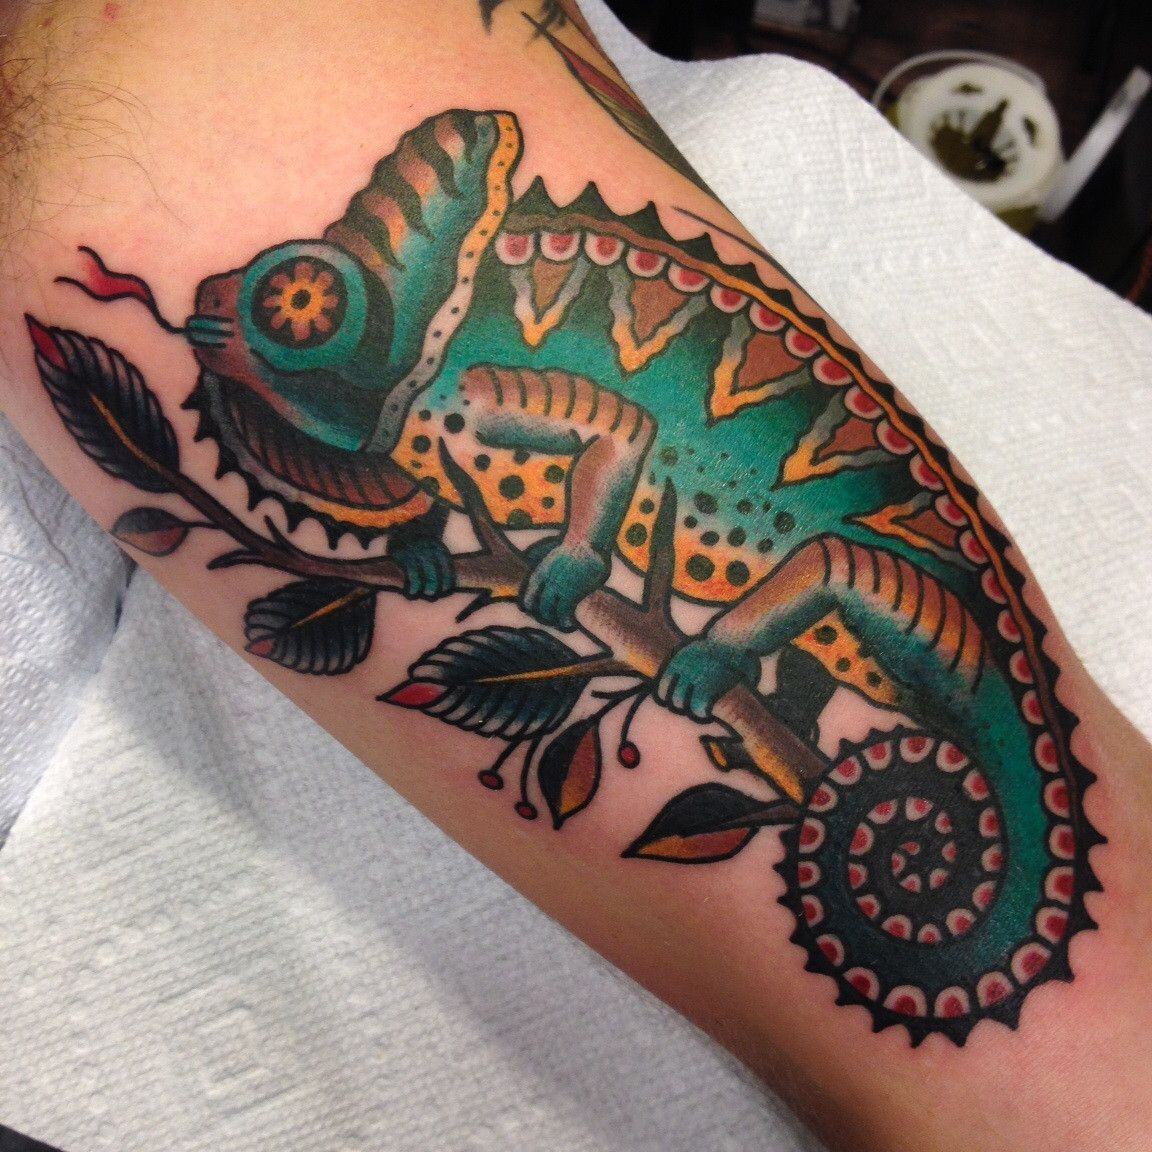 673142ceed8ce Traditional Chameleon by Matthew Houston. Gastown Tattoo. Vancouver, BC,  Canada. - Imgur